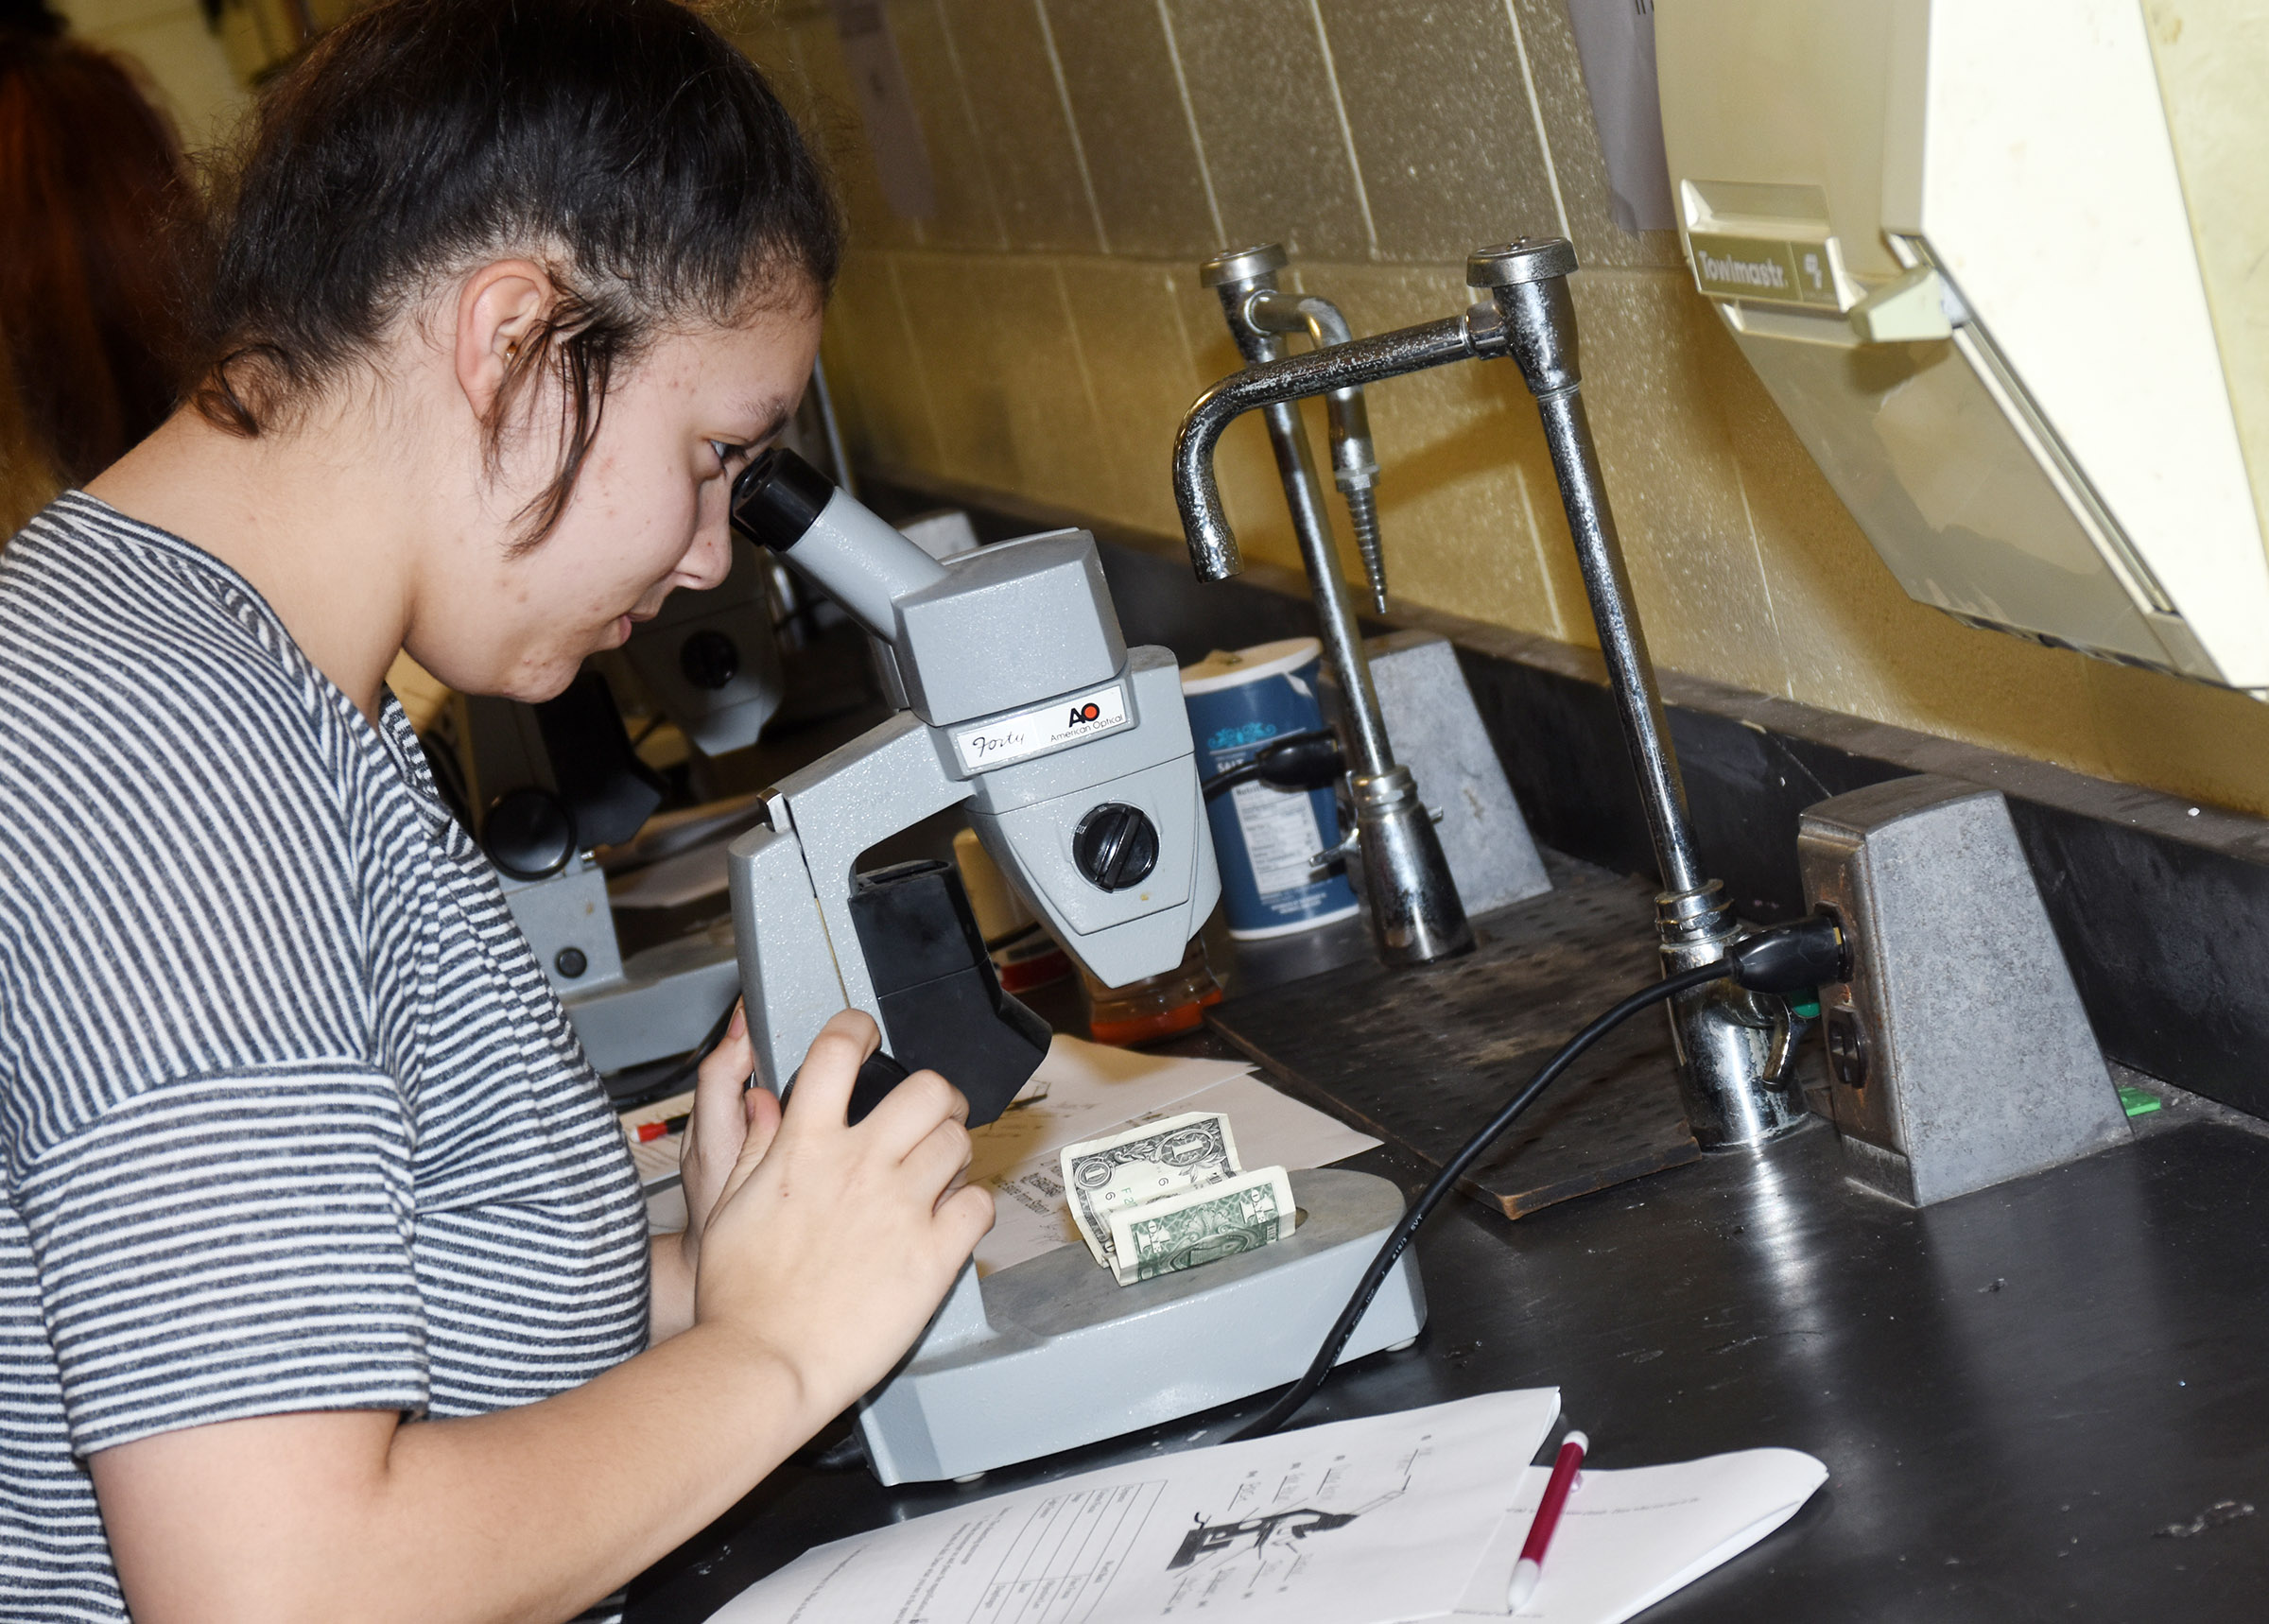 CHS freshman Tierra Bridgewater looks at a $1 bill under the microscope.